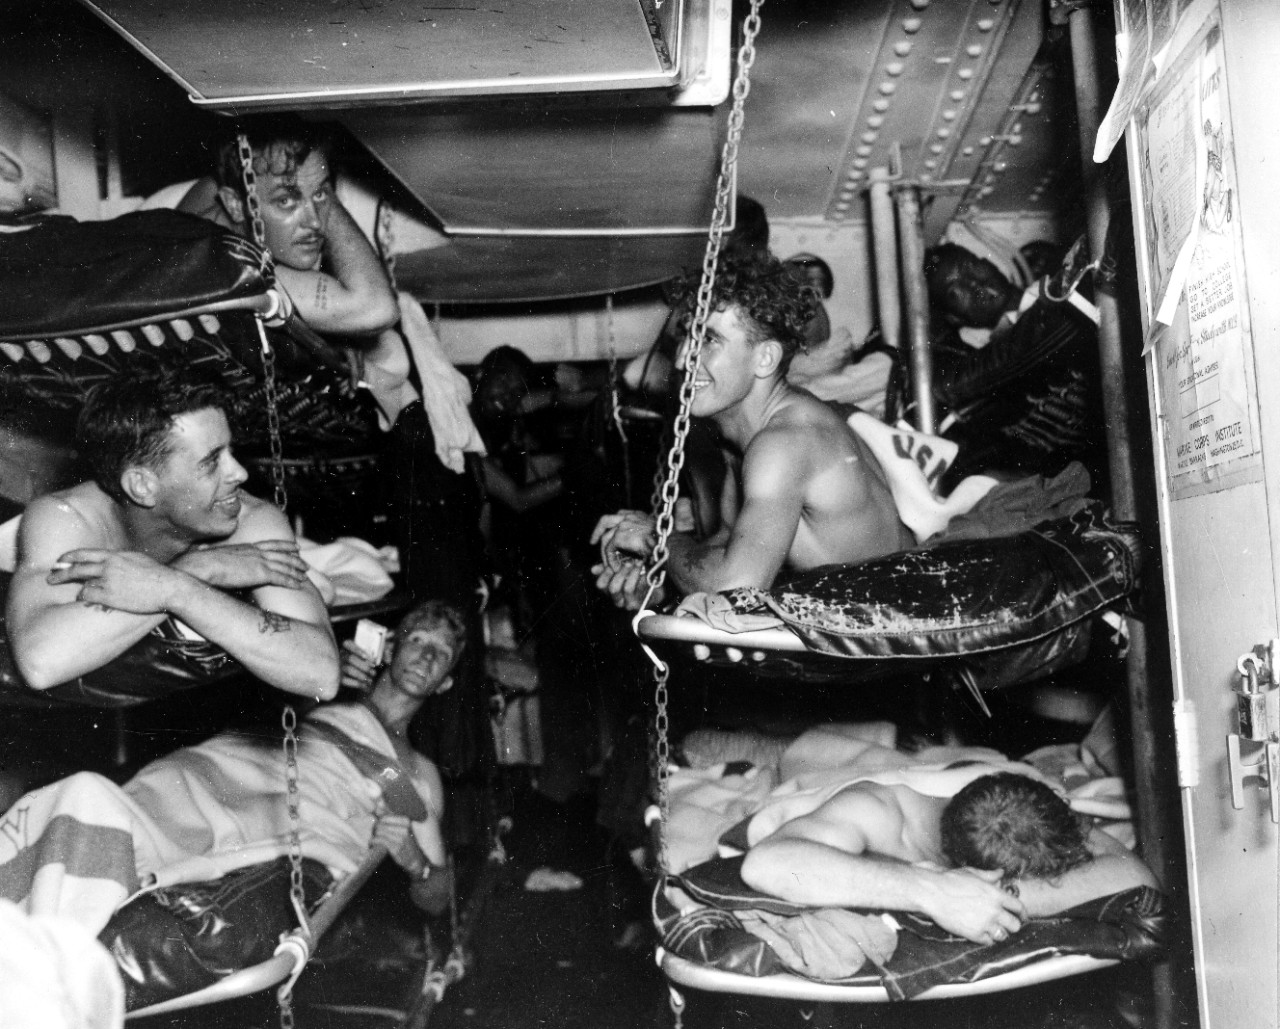 Longshaw's sailors relax on board Salt Lake City, 18 May 1945, showing various emotions after their ordeal. (U.S. Navy Photograph 80-G-343592, National Archives and Records Administration, Still Pictures Division, College Park, Md.)